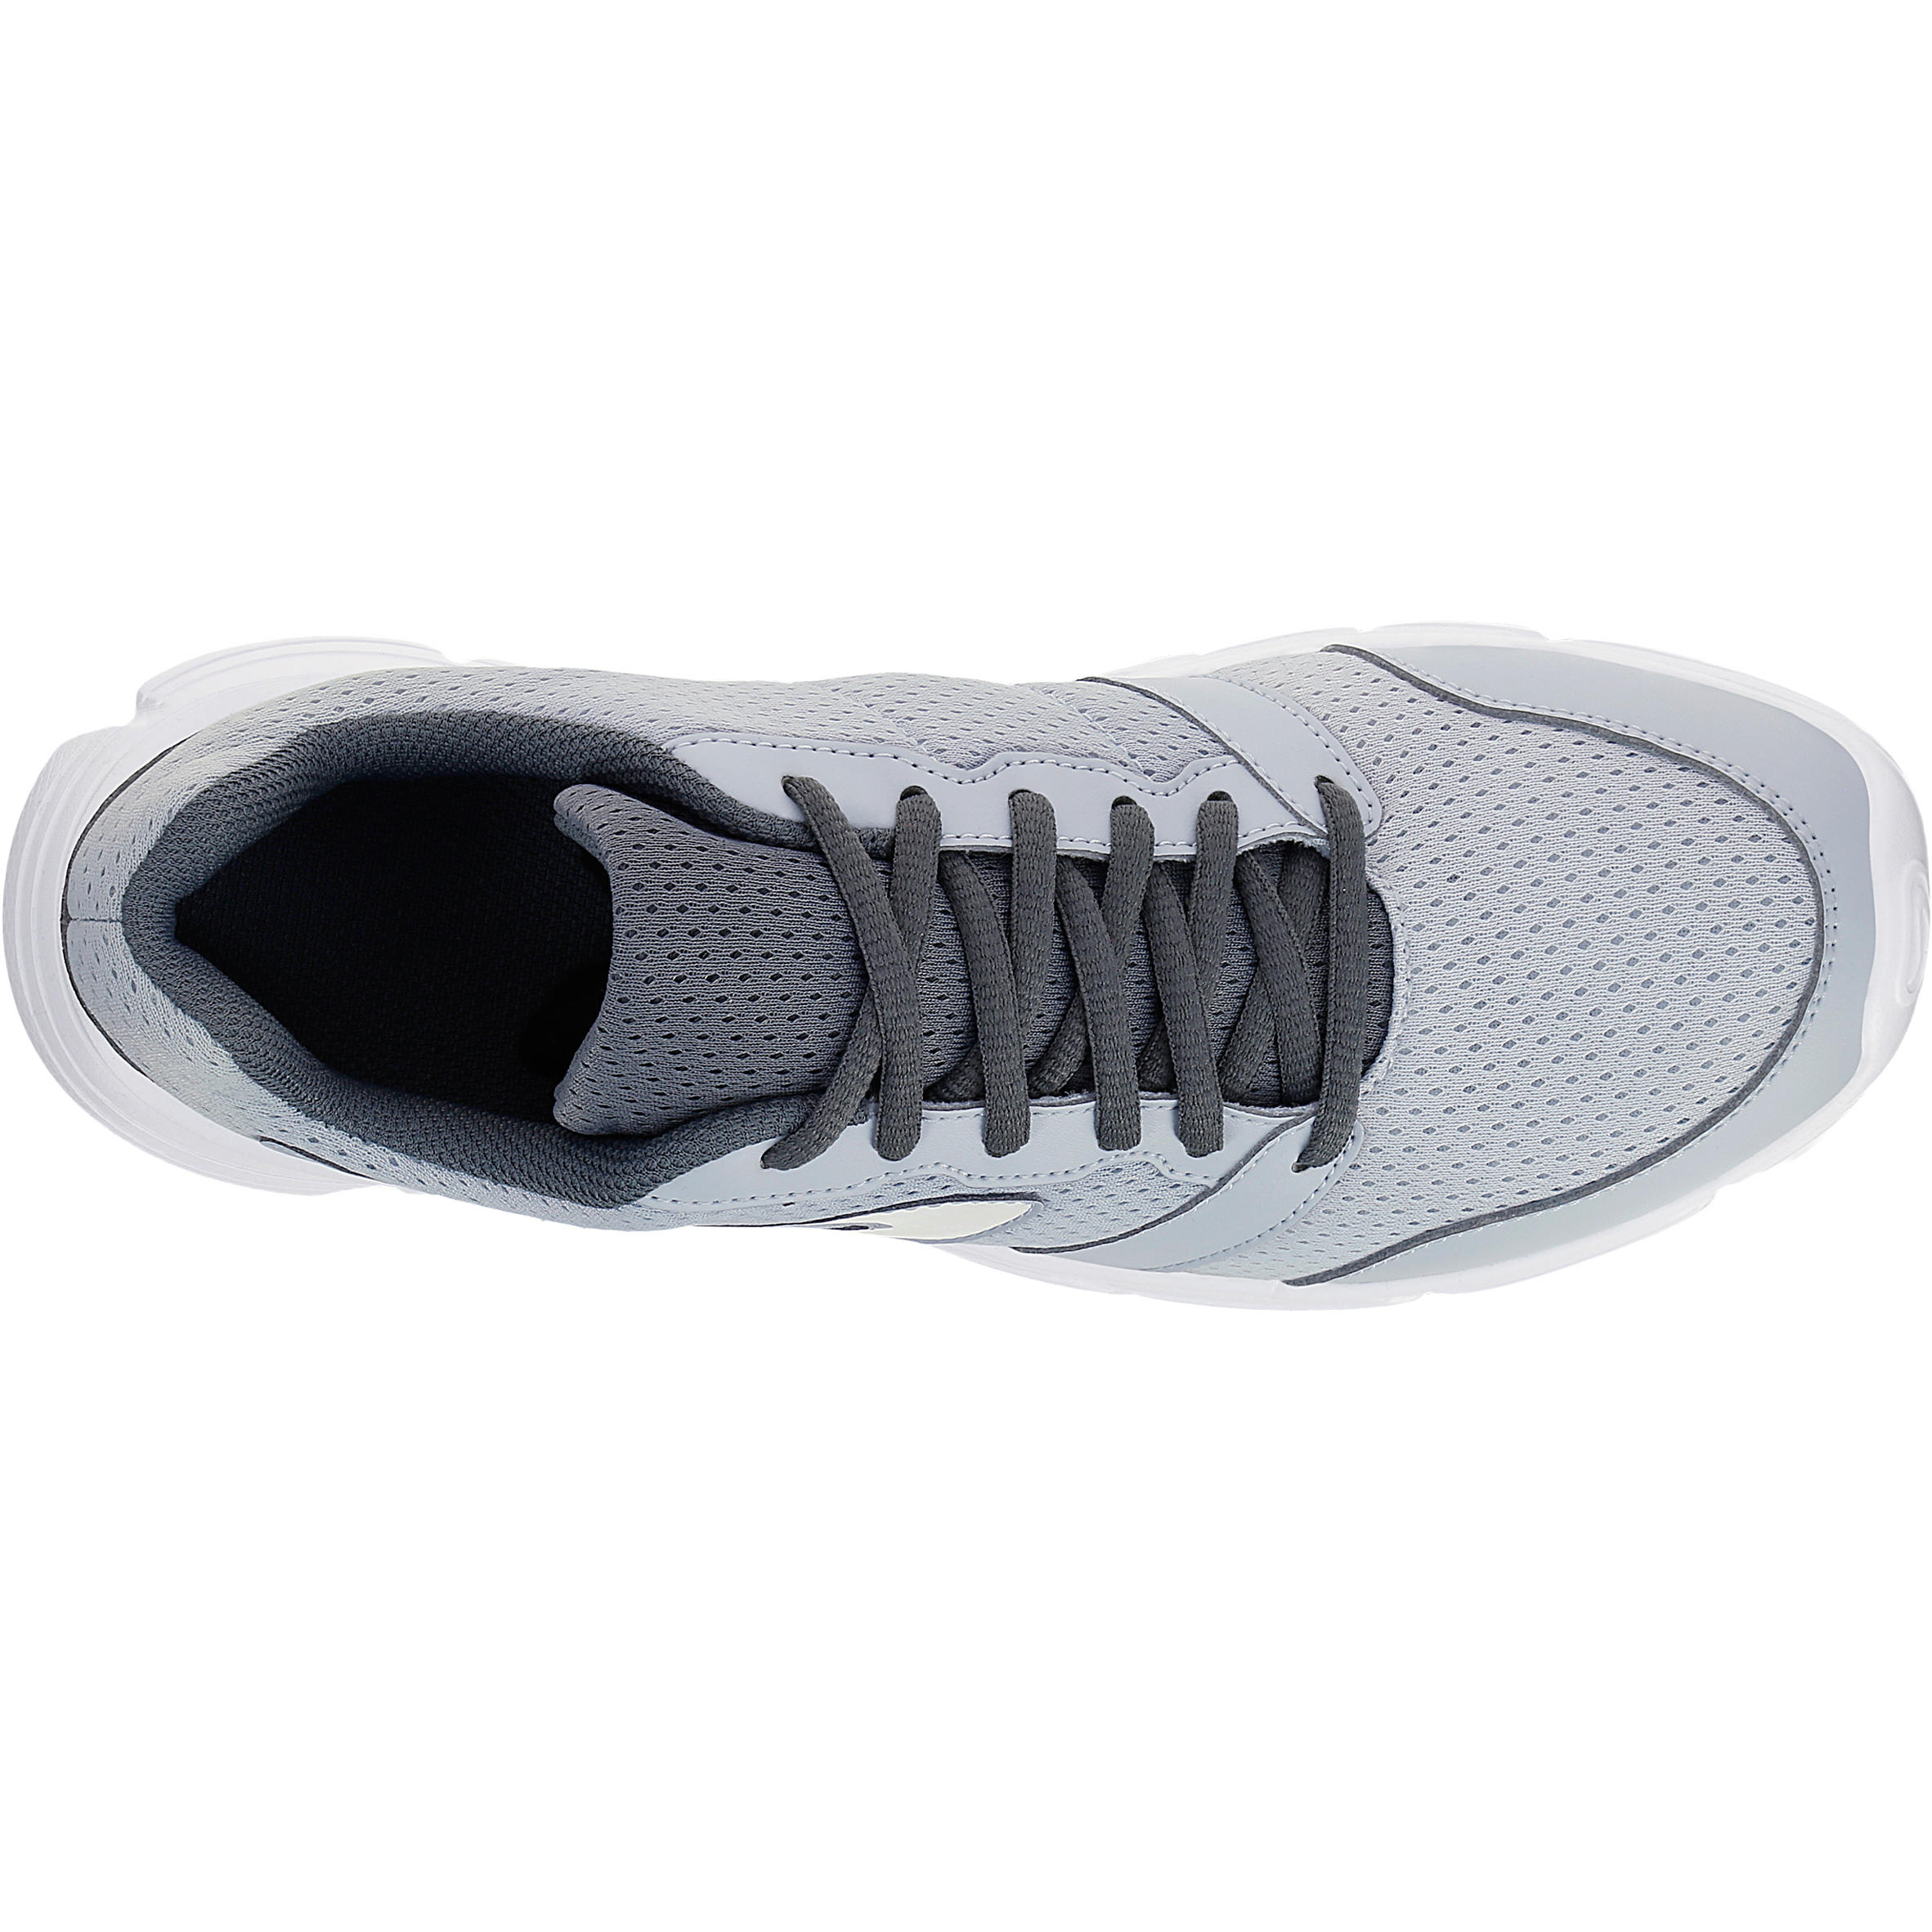 Chaussures Gris Jogging Run One Femme cqnwPTYrqS